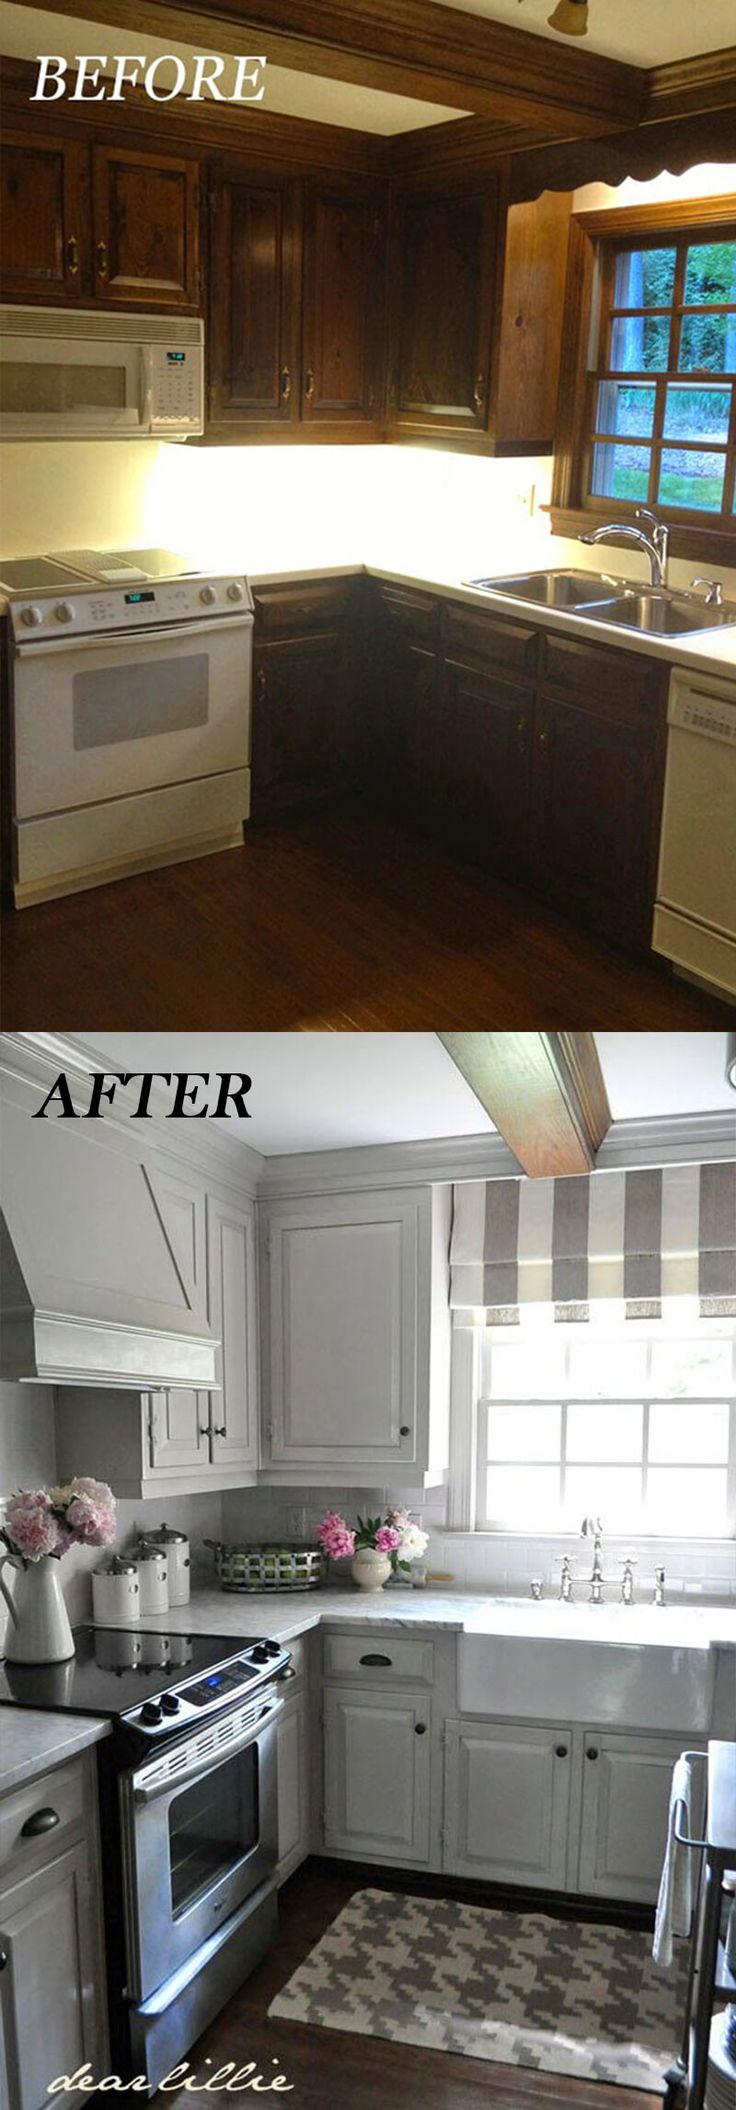 25 amazing before and after budget friendly kitchen for Cheap kitchen makeover ideas before and after